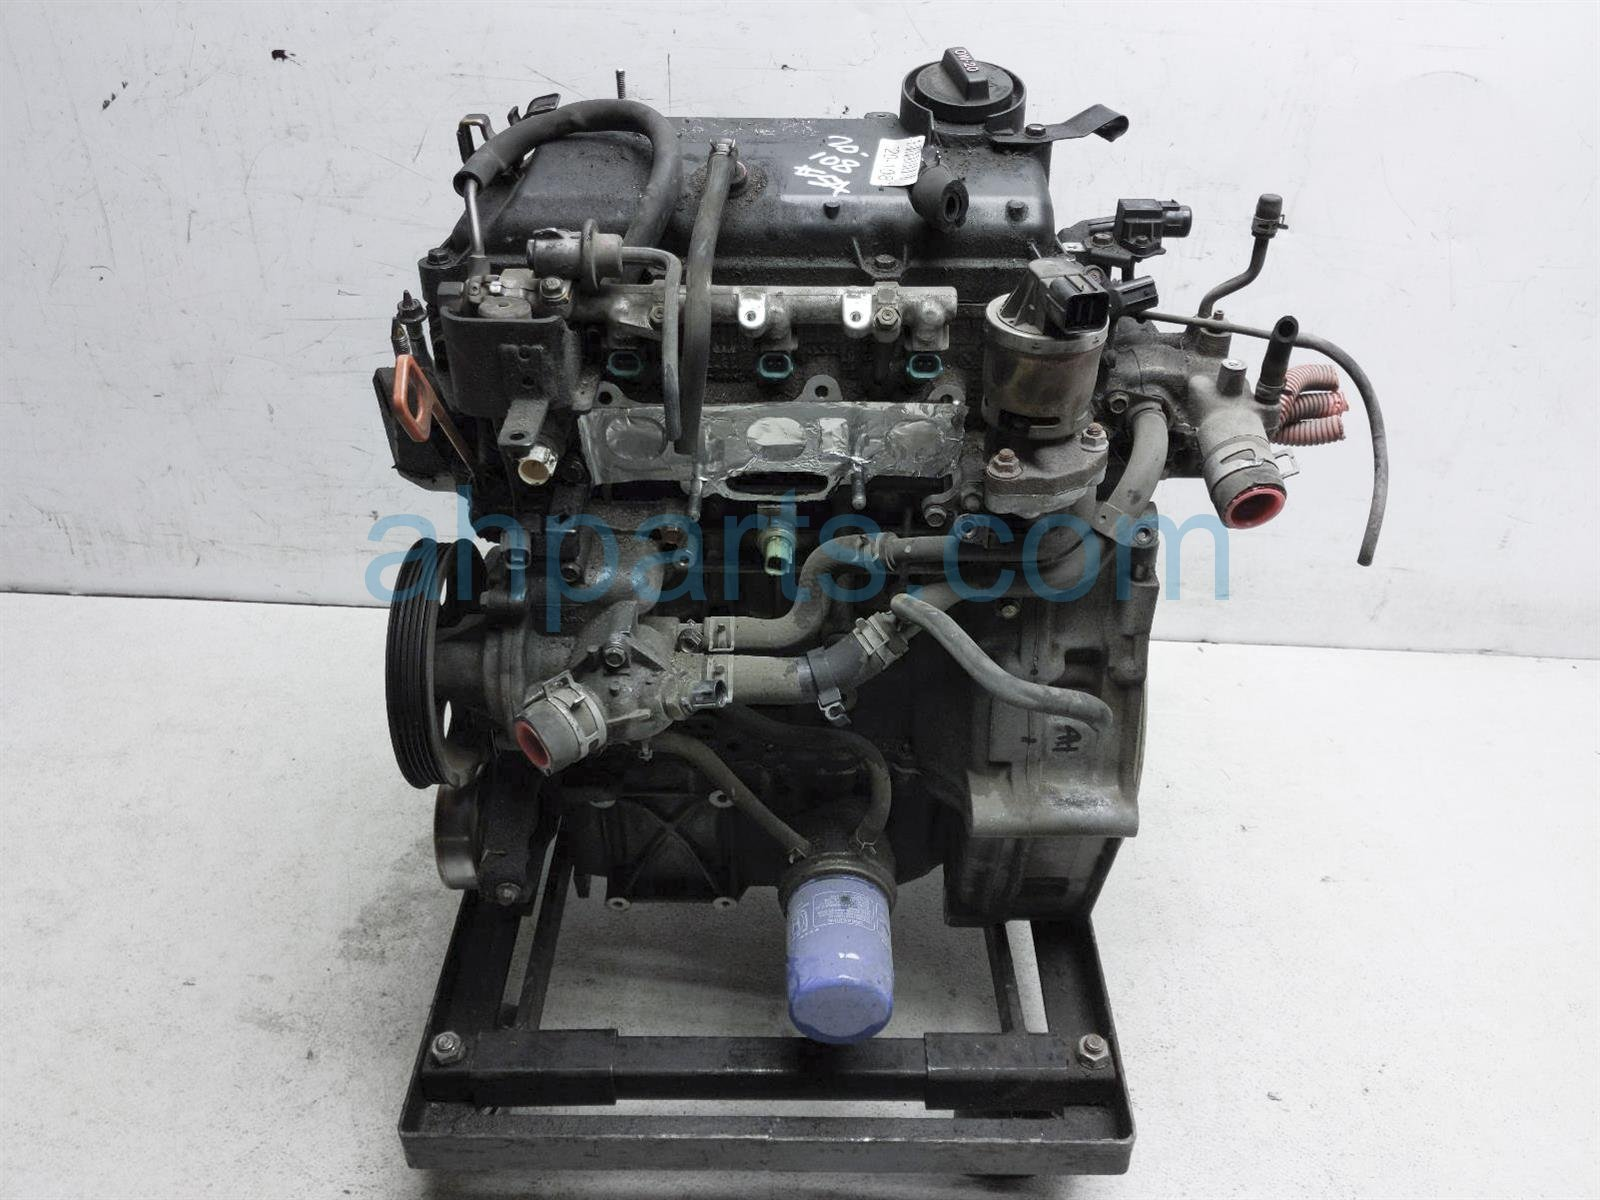 2003 Honda Insight Motor / Engine = 151k Miles   ! 10002 PHM A62 Replacement